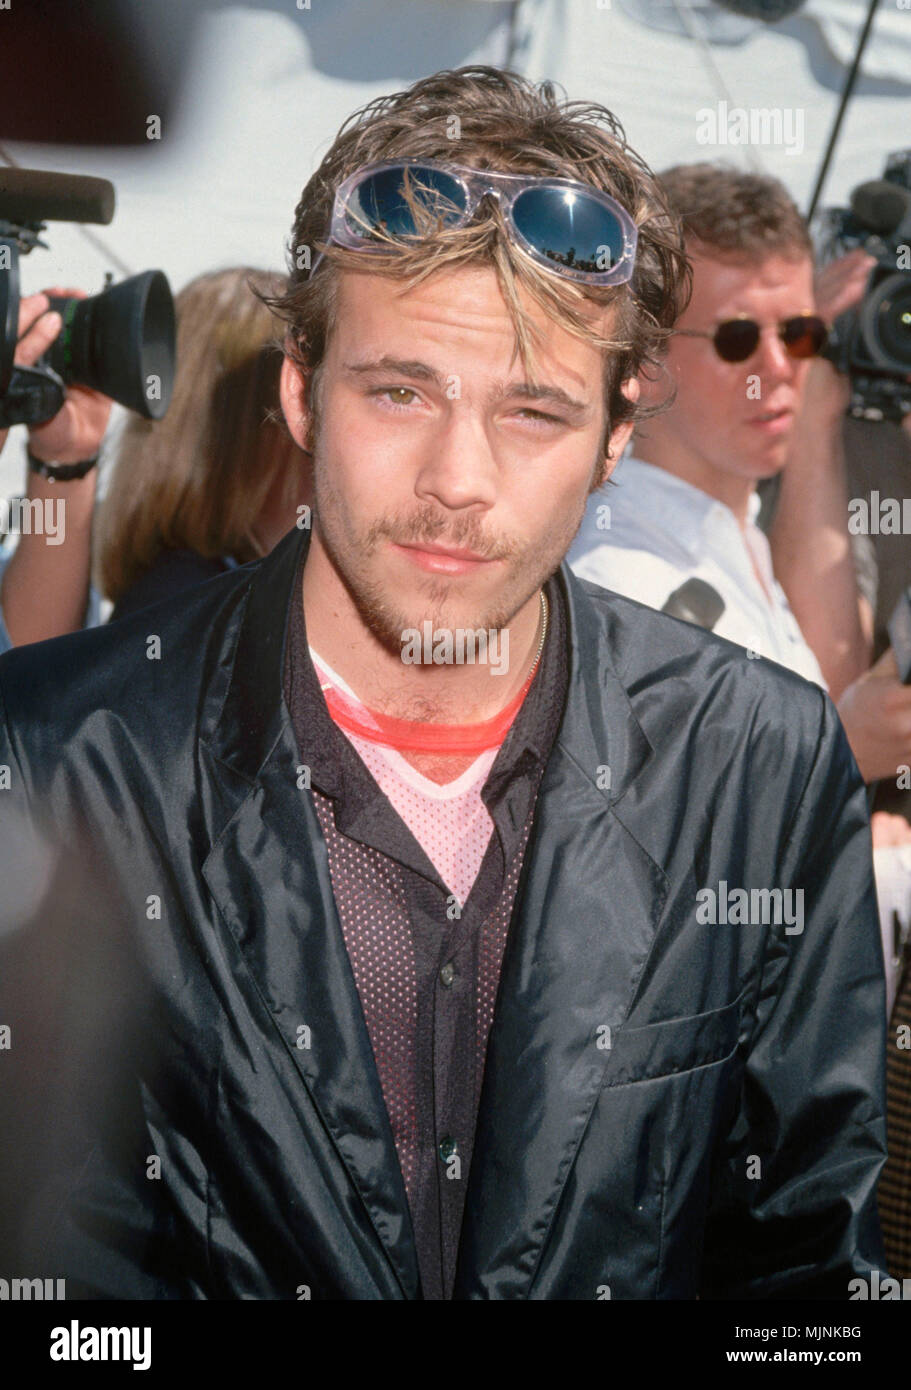 Stephen Dorff Attending Film Awards --- ' Tsuni / - 'Stephen Dorff Attending Film Awards Stephen Dorff Attending Film Awards one person, Vertical, Best of, Hollywood Life, Event in Hollywood Life - California,  Red Carpet Event, Vertical, USA, Film Industry, Celebrities,  Photography, Bestof, Arts Culture and Entertainment, , , Topix - Stock Image